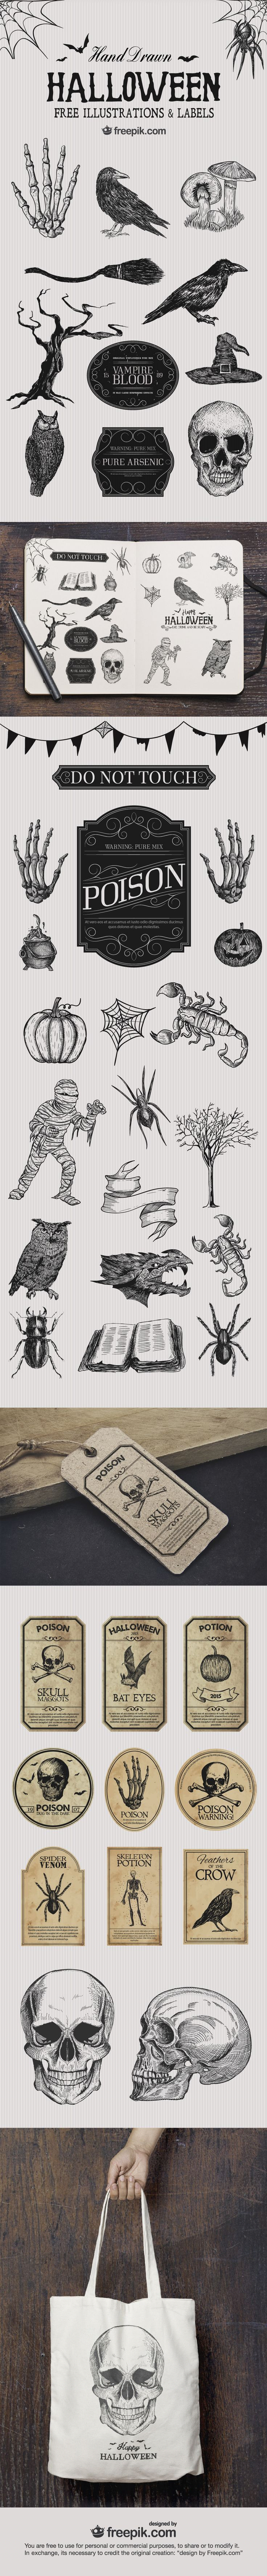 #Free Halloween Illustrations - Download Now!